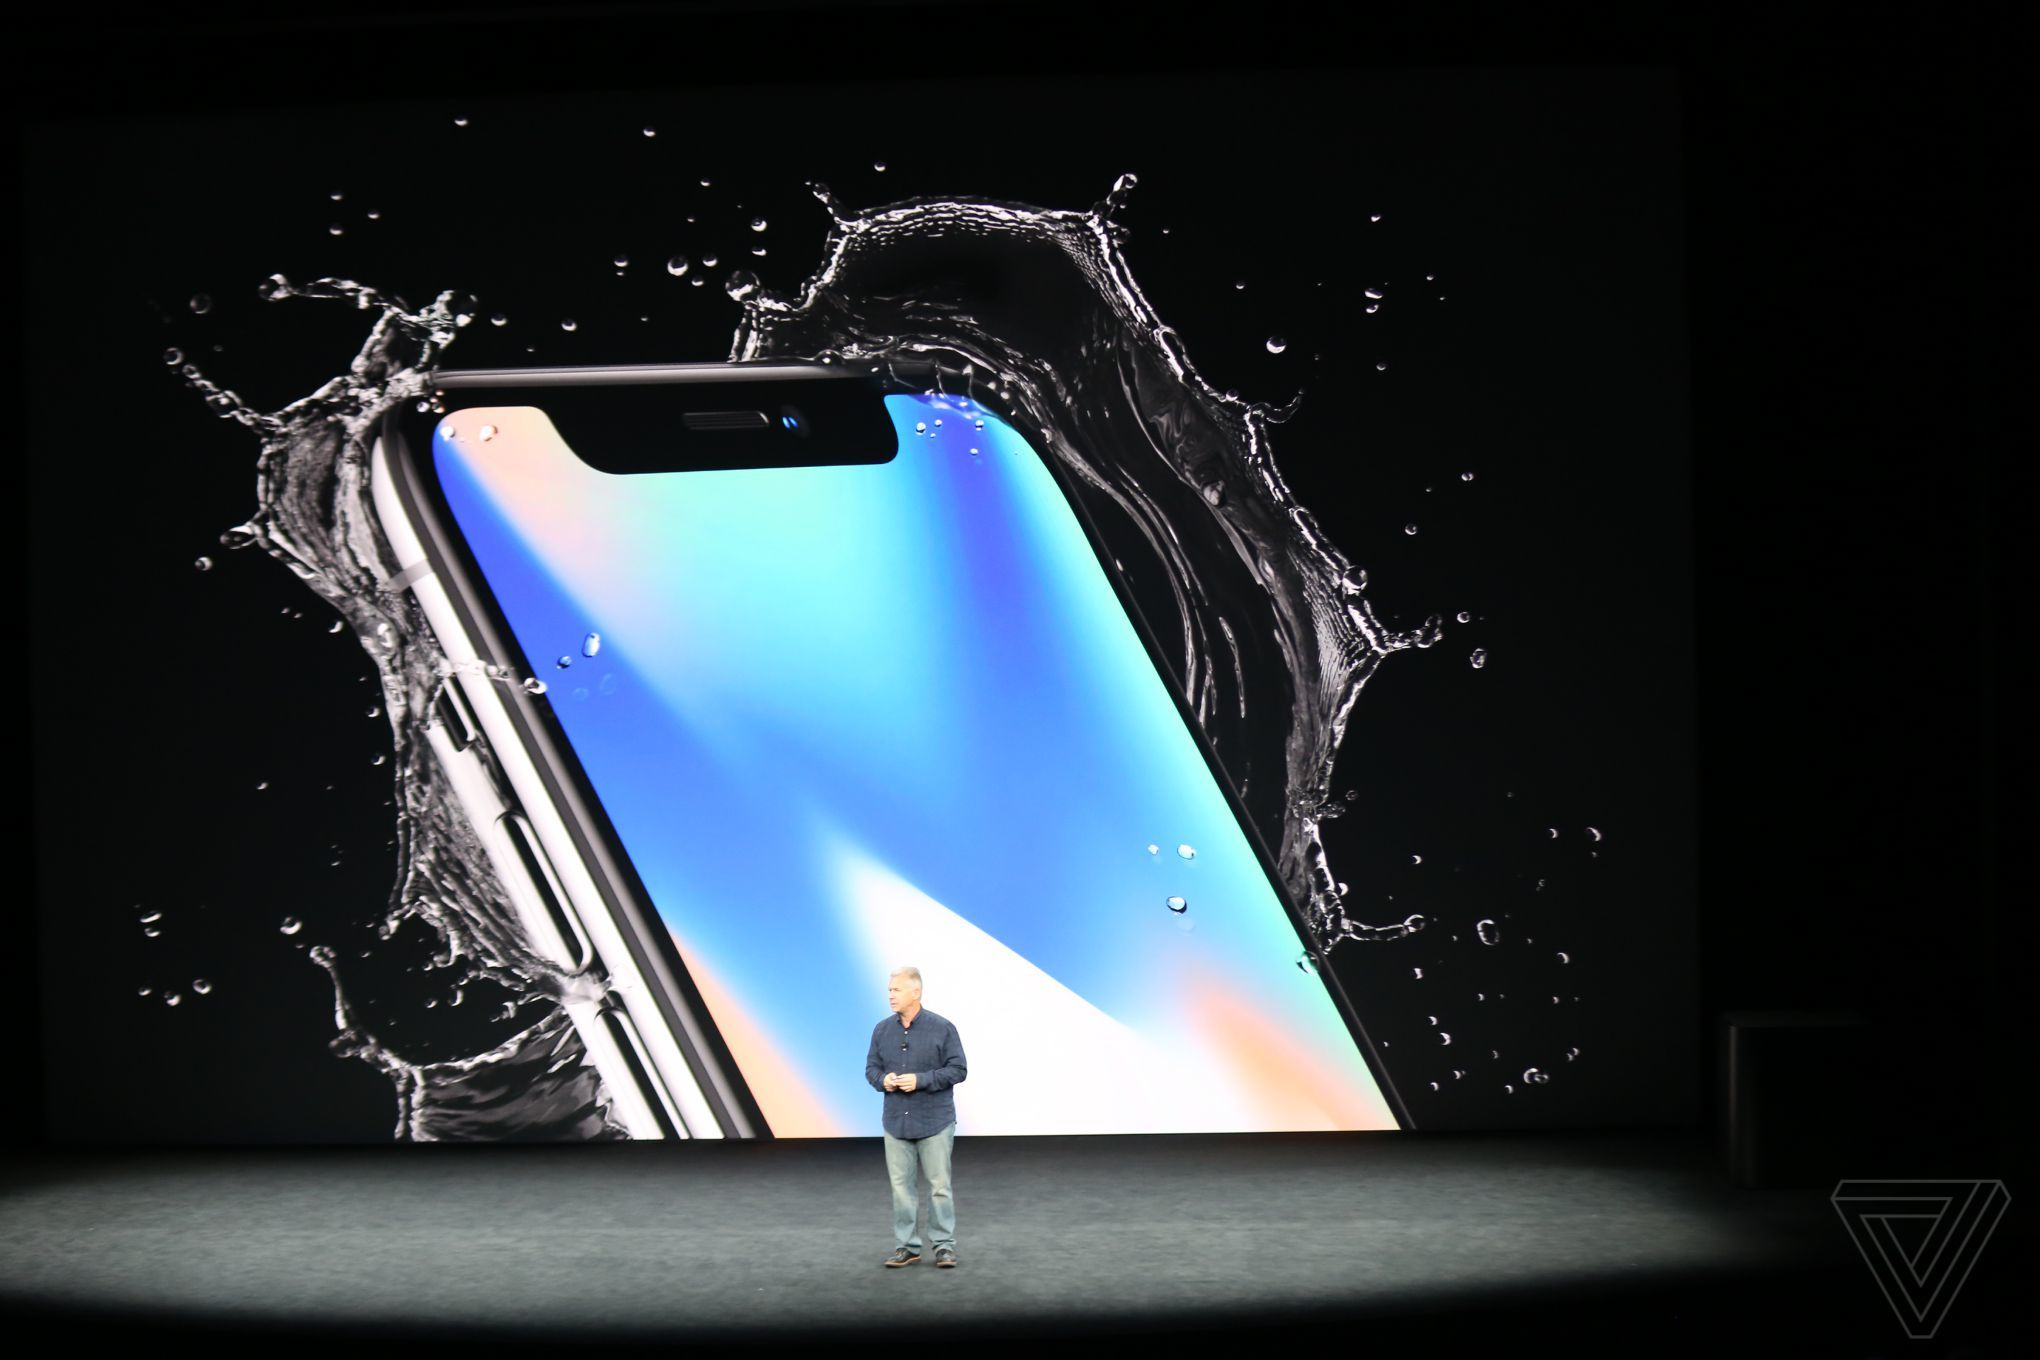 One more thing… iPhone X